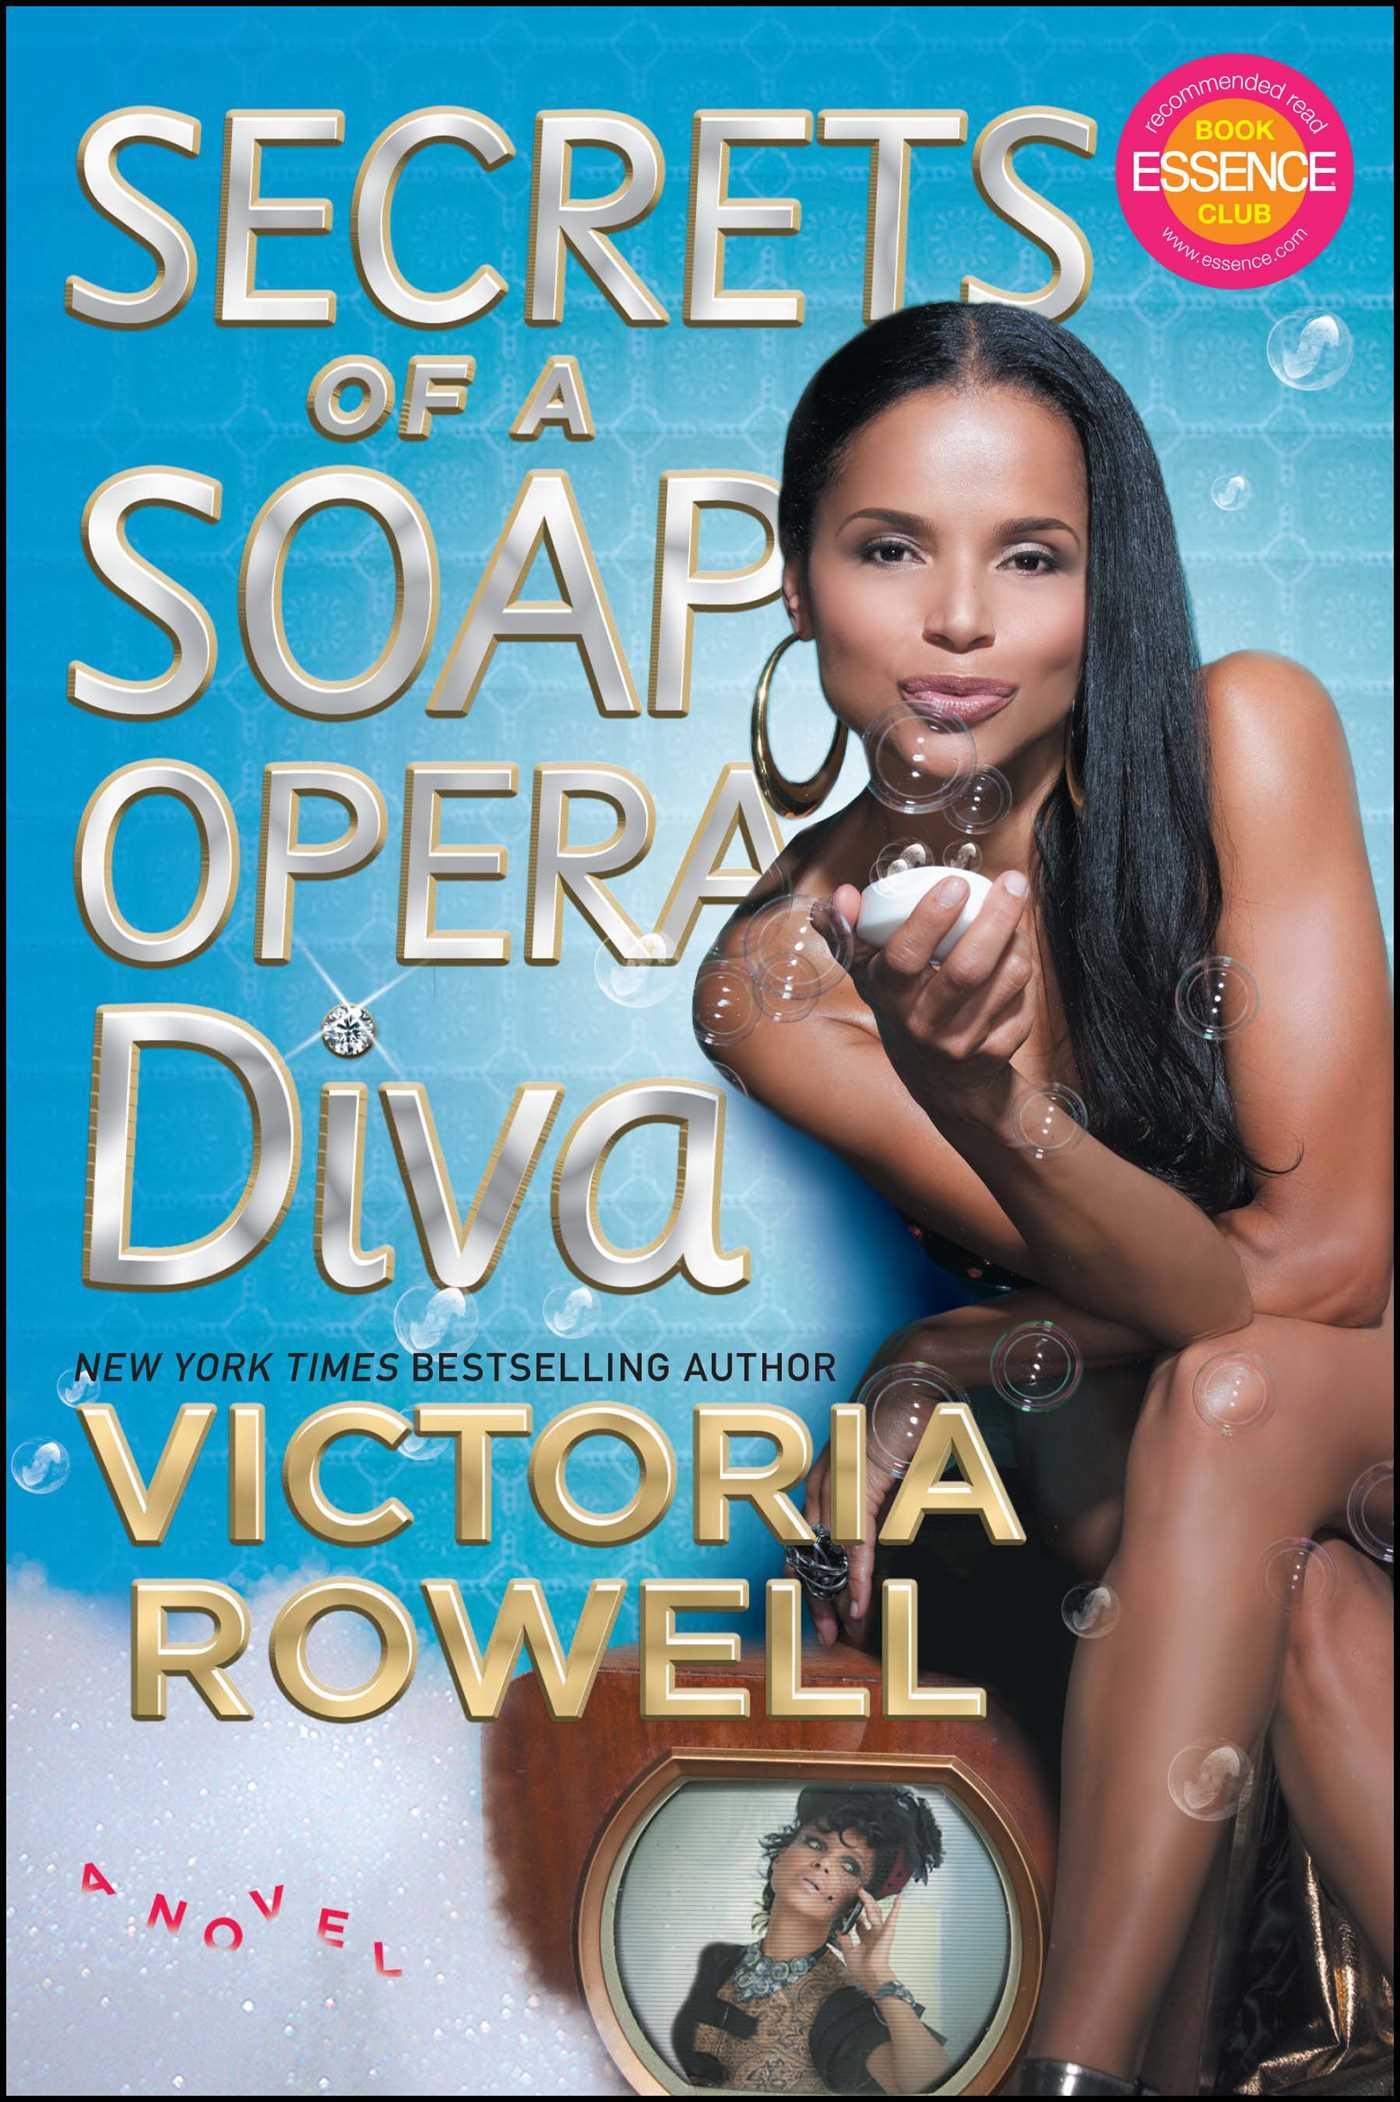 Secrets-of-a-soap-opera-diva-9781439164426_hr